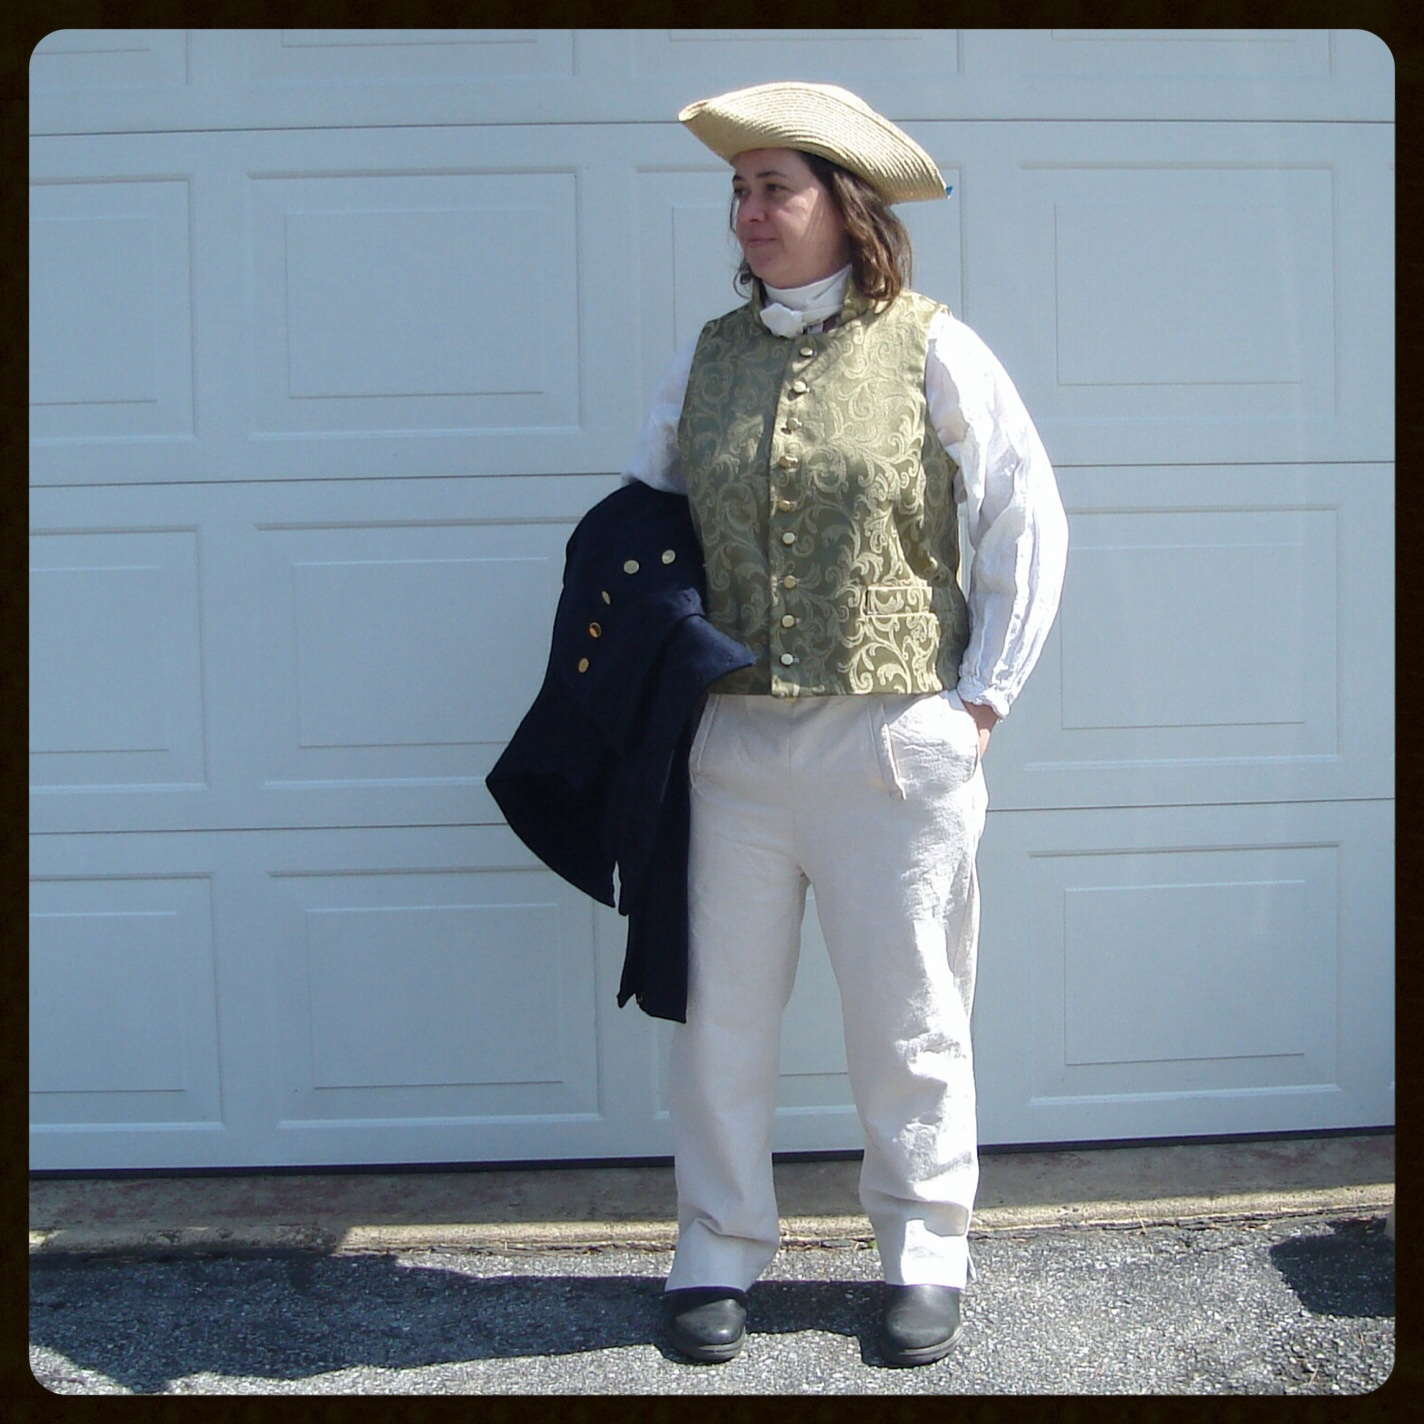 Susan, War of 1812 Era Waistcoat, Linen Shirt and Canvas Trousers